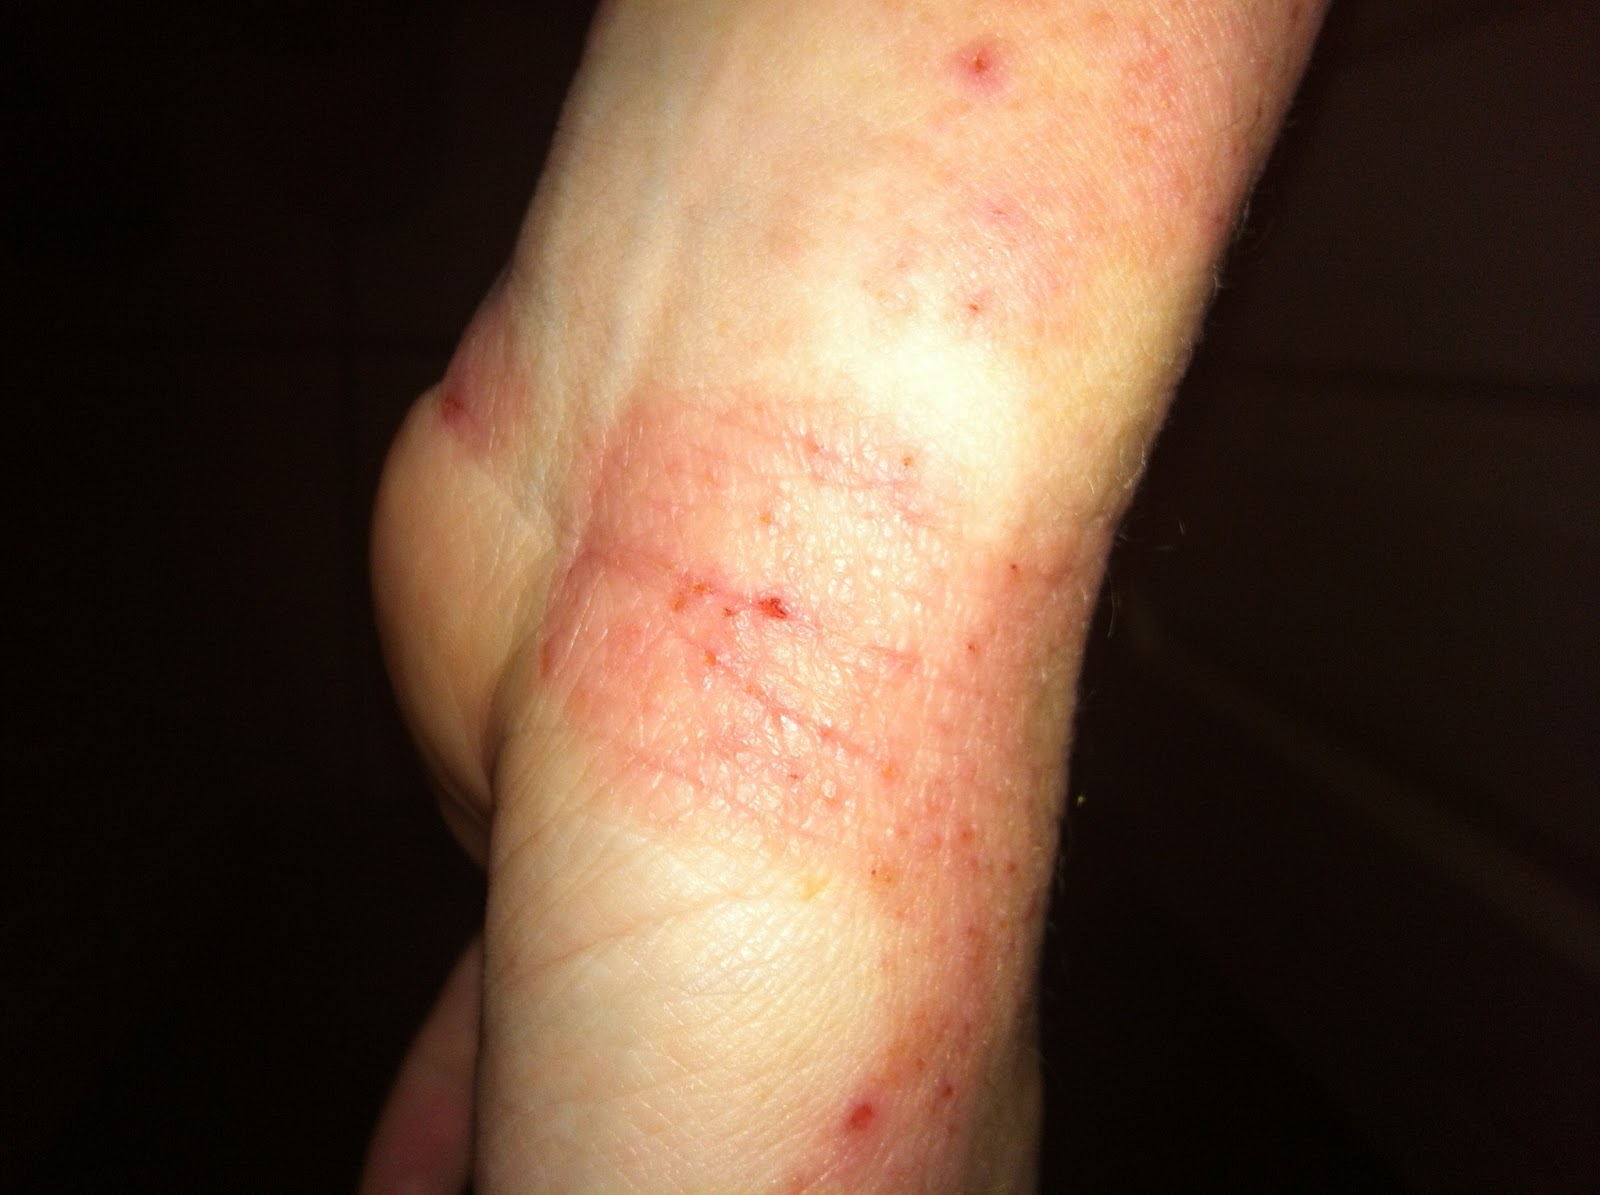 Astonishing Bad Cuts On Wrist More Information On Electro Team Hairstyles For Men Maxibearus